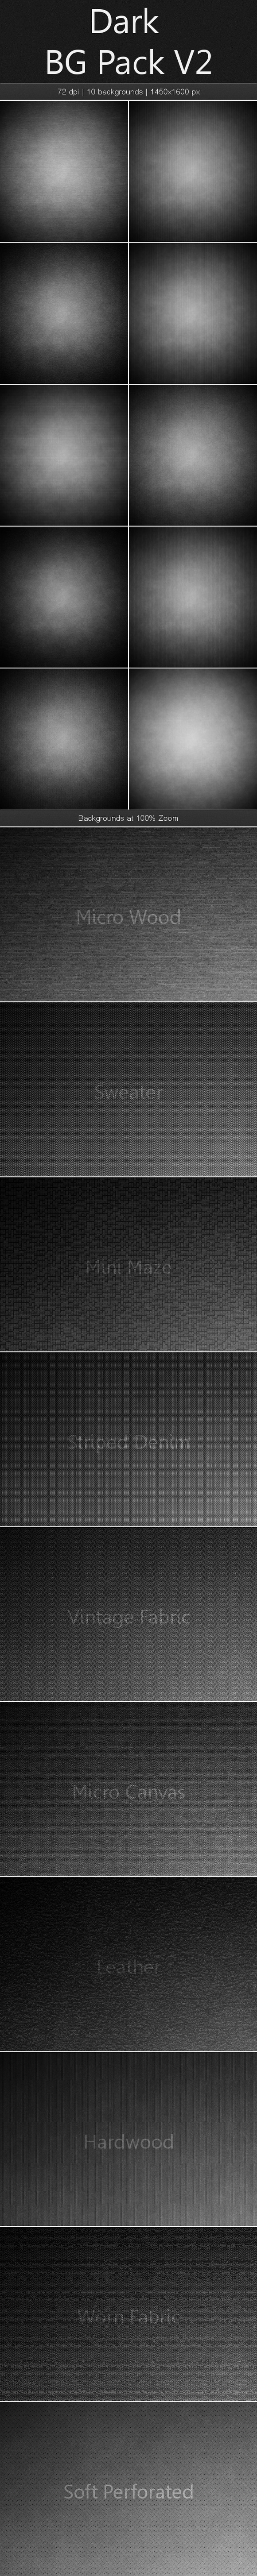 Dark Background Pack V2